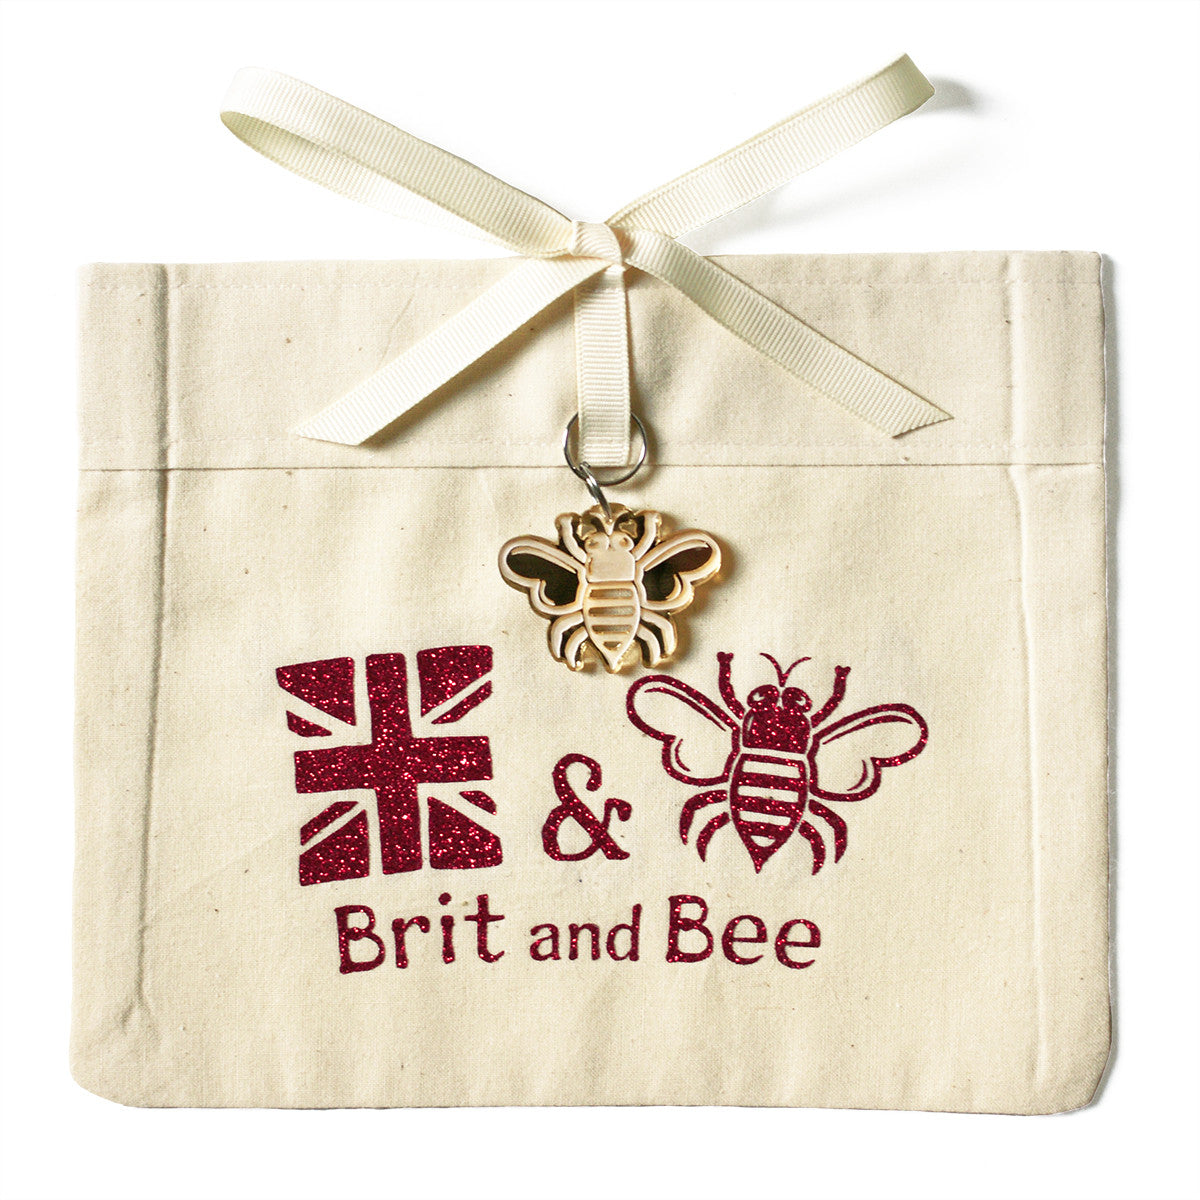 Brit and Bee Sorority Chapter Decal - Alpha Omicron Pi